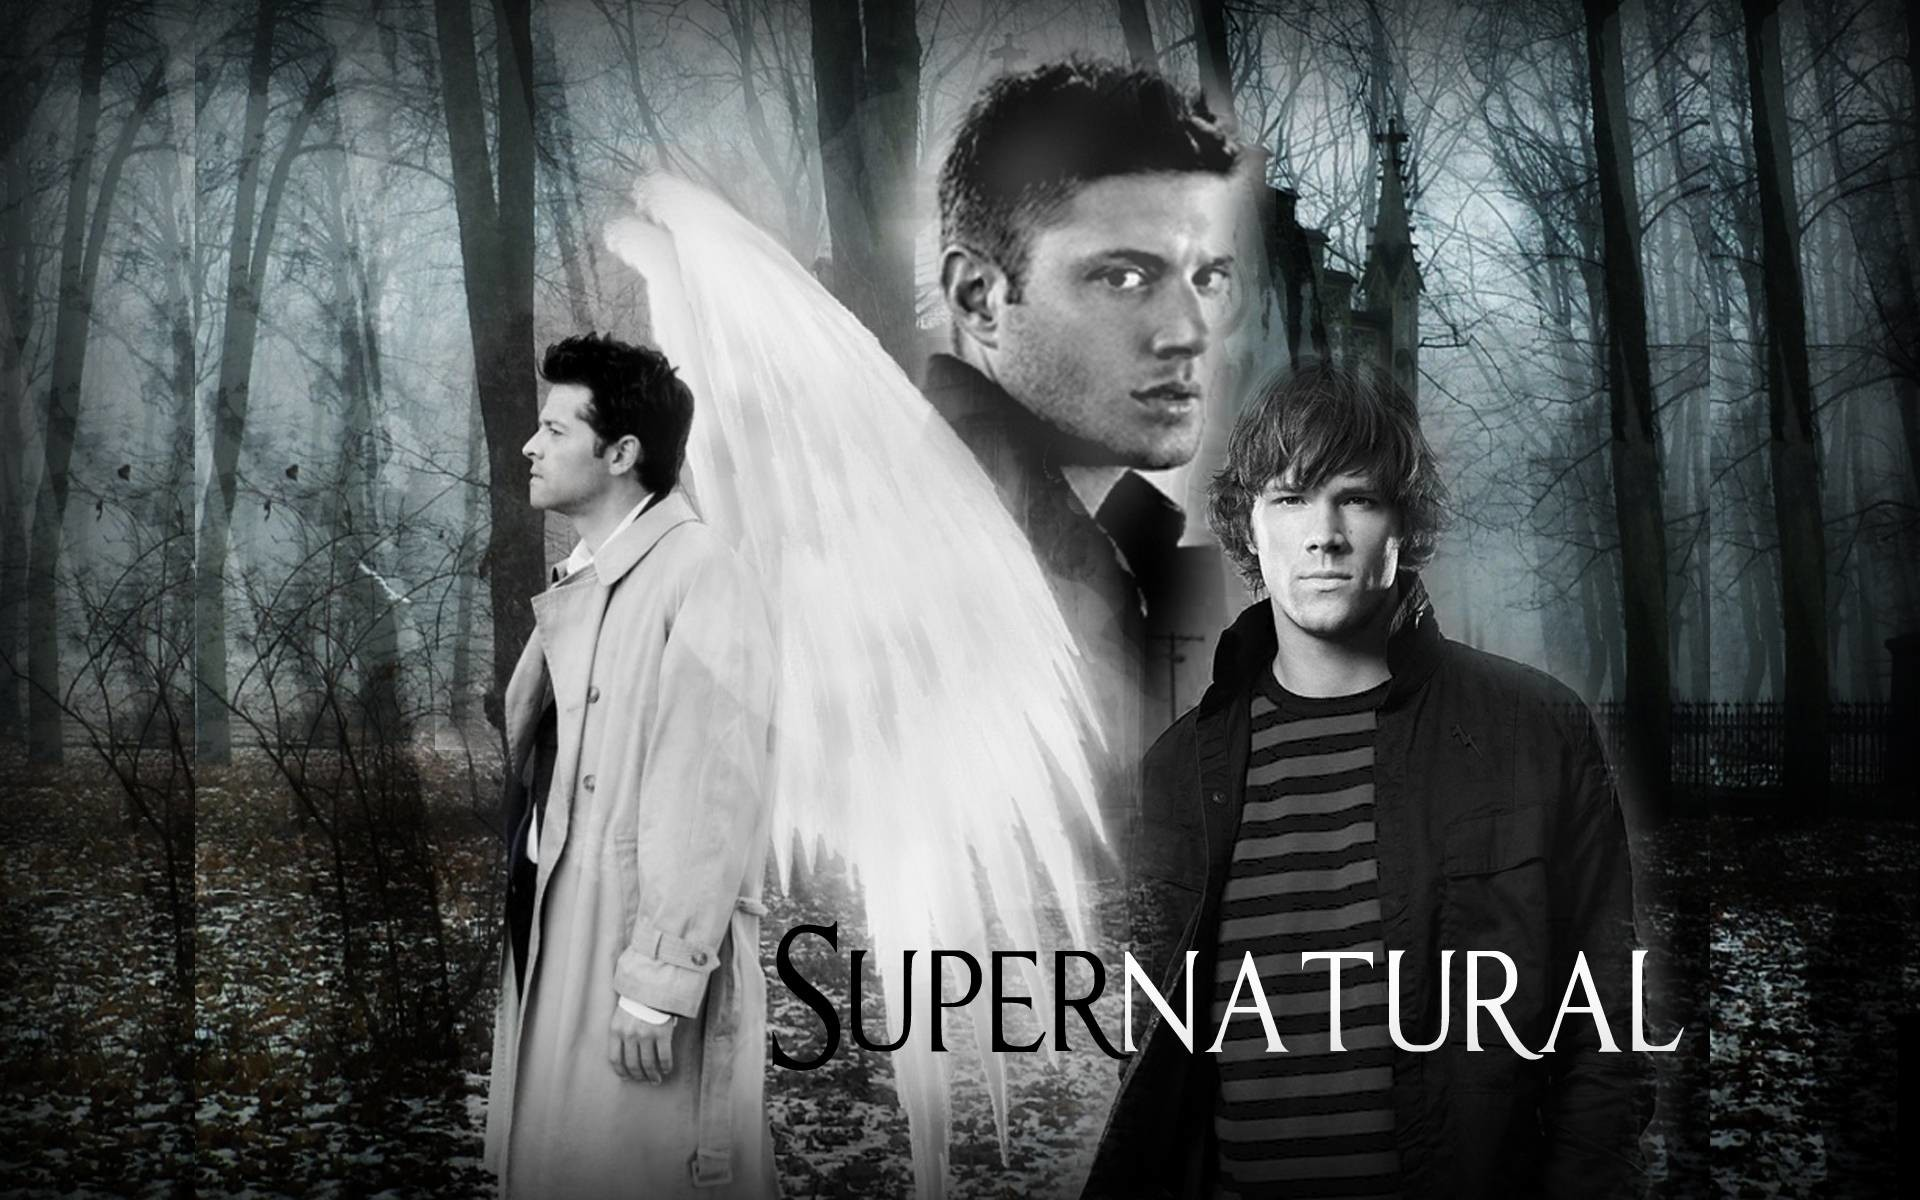 supernatural | supernatural wallpaper 1 – Supernatural/skillet Picture